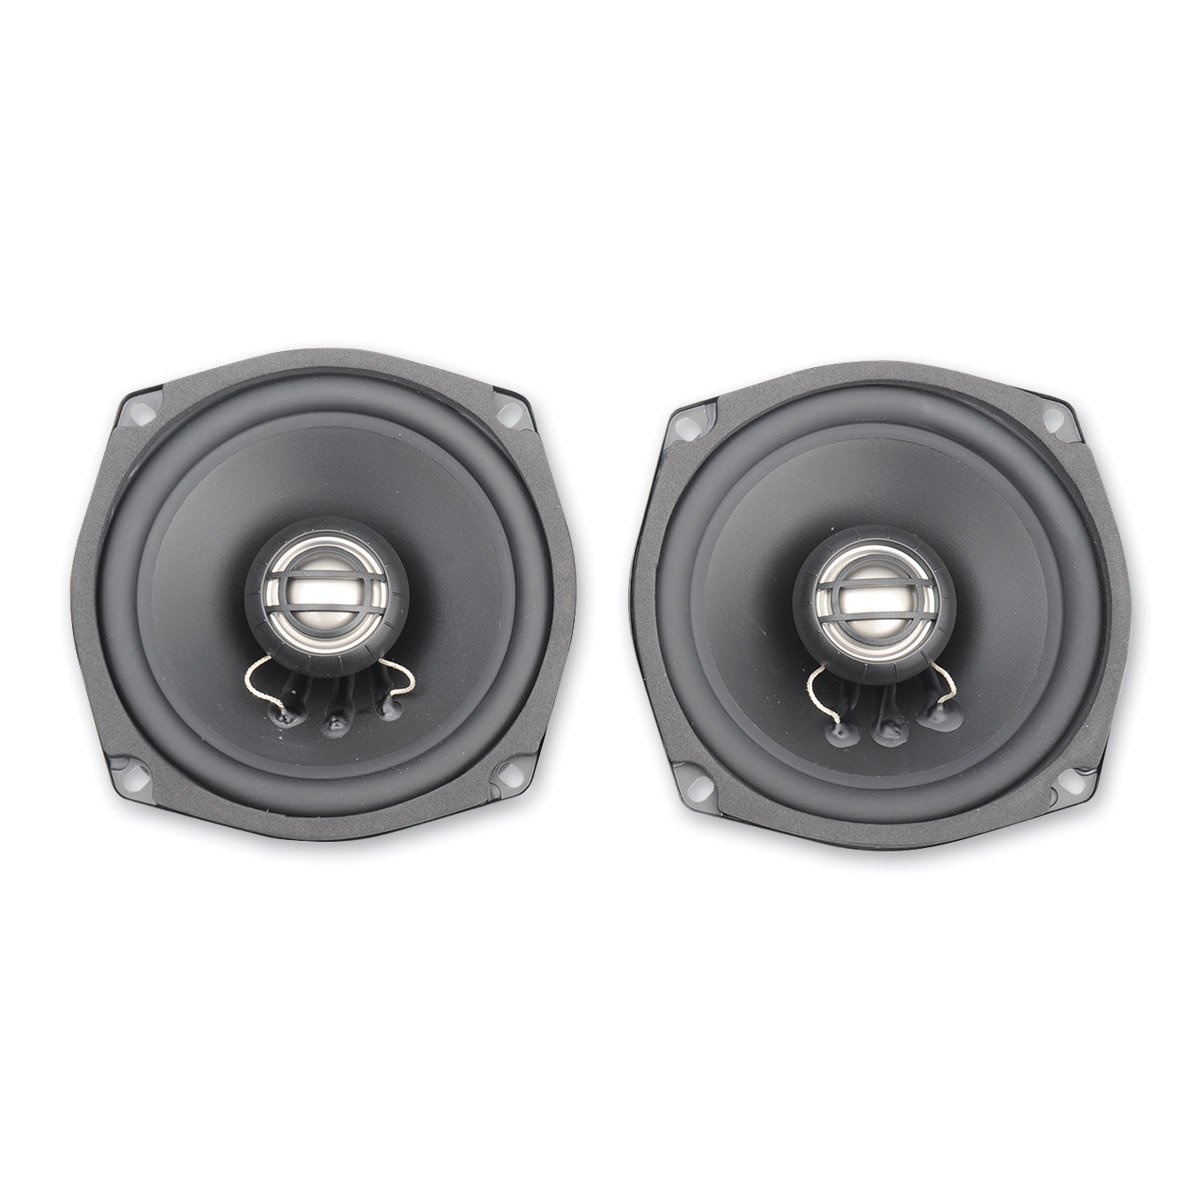 Hogtunes 352R-AA Replacement Rear Speaker (Gen3 5.25' s for 2006-2013 Harley-Davidson FLH Touring Models)